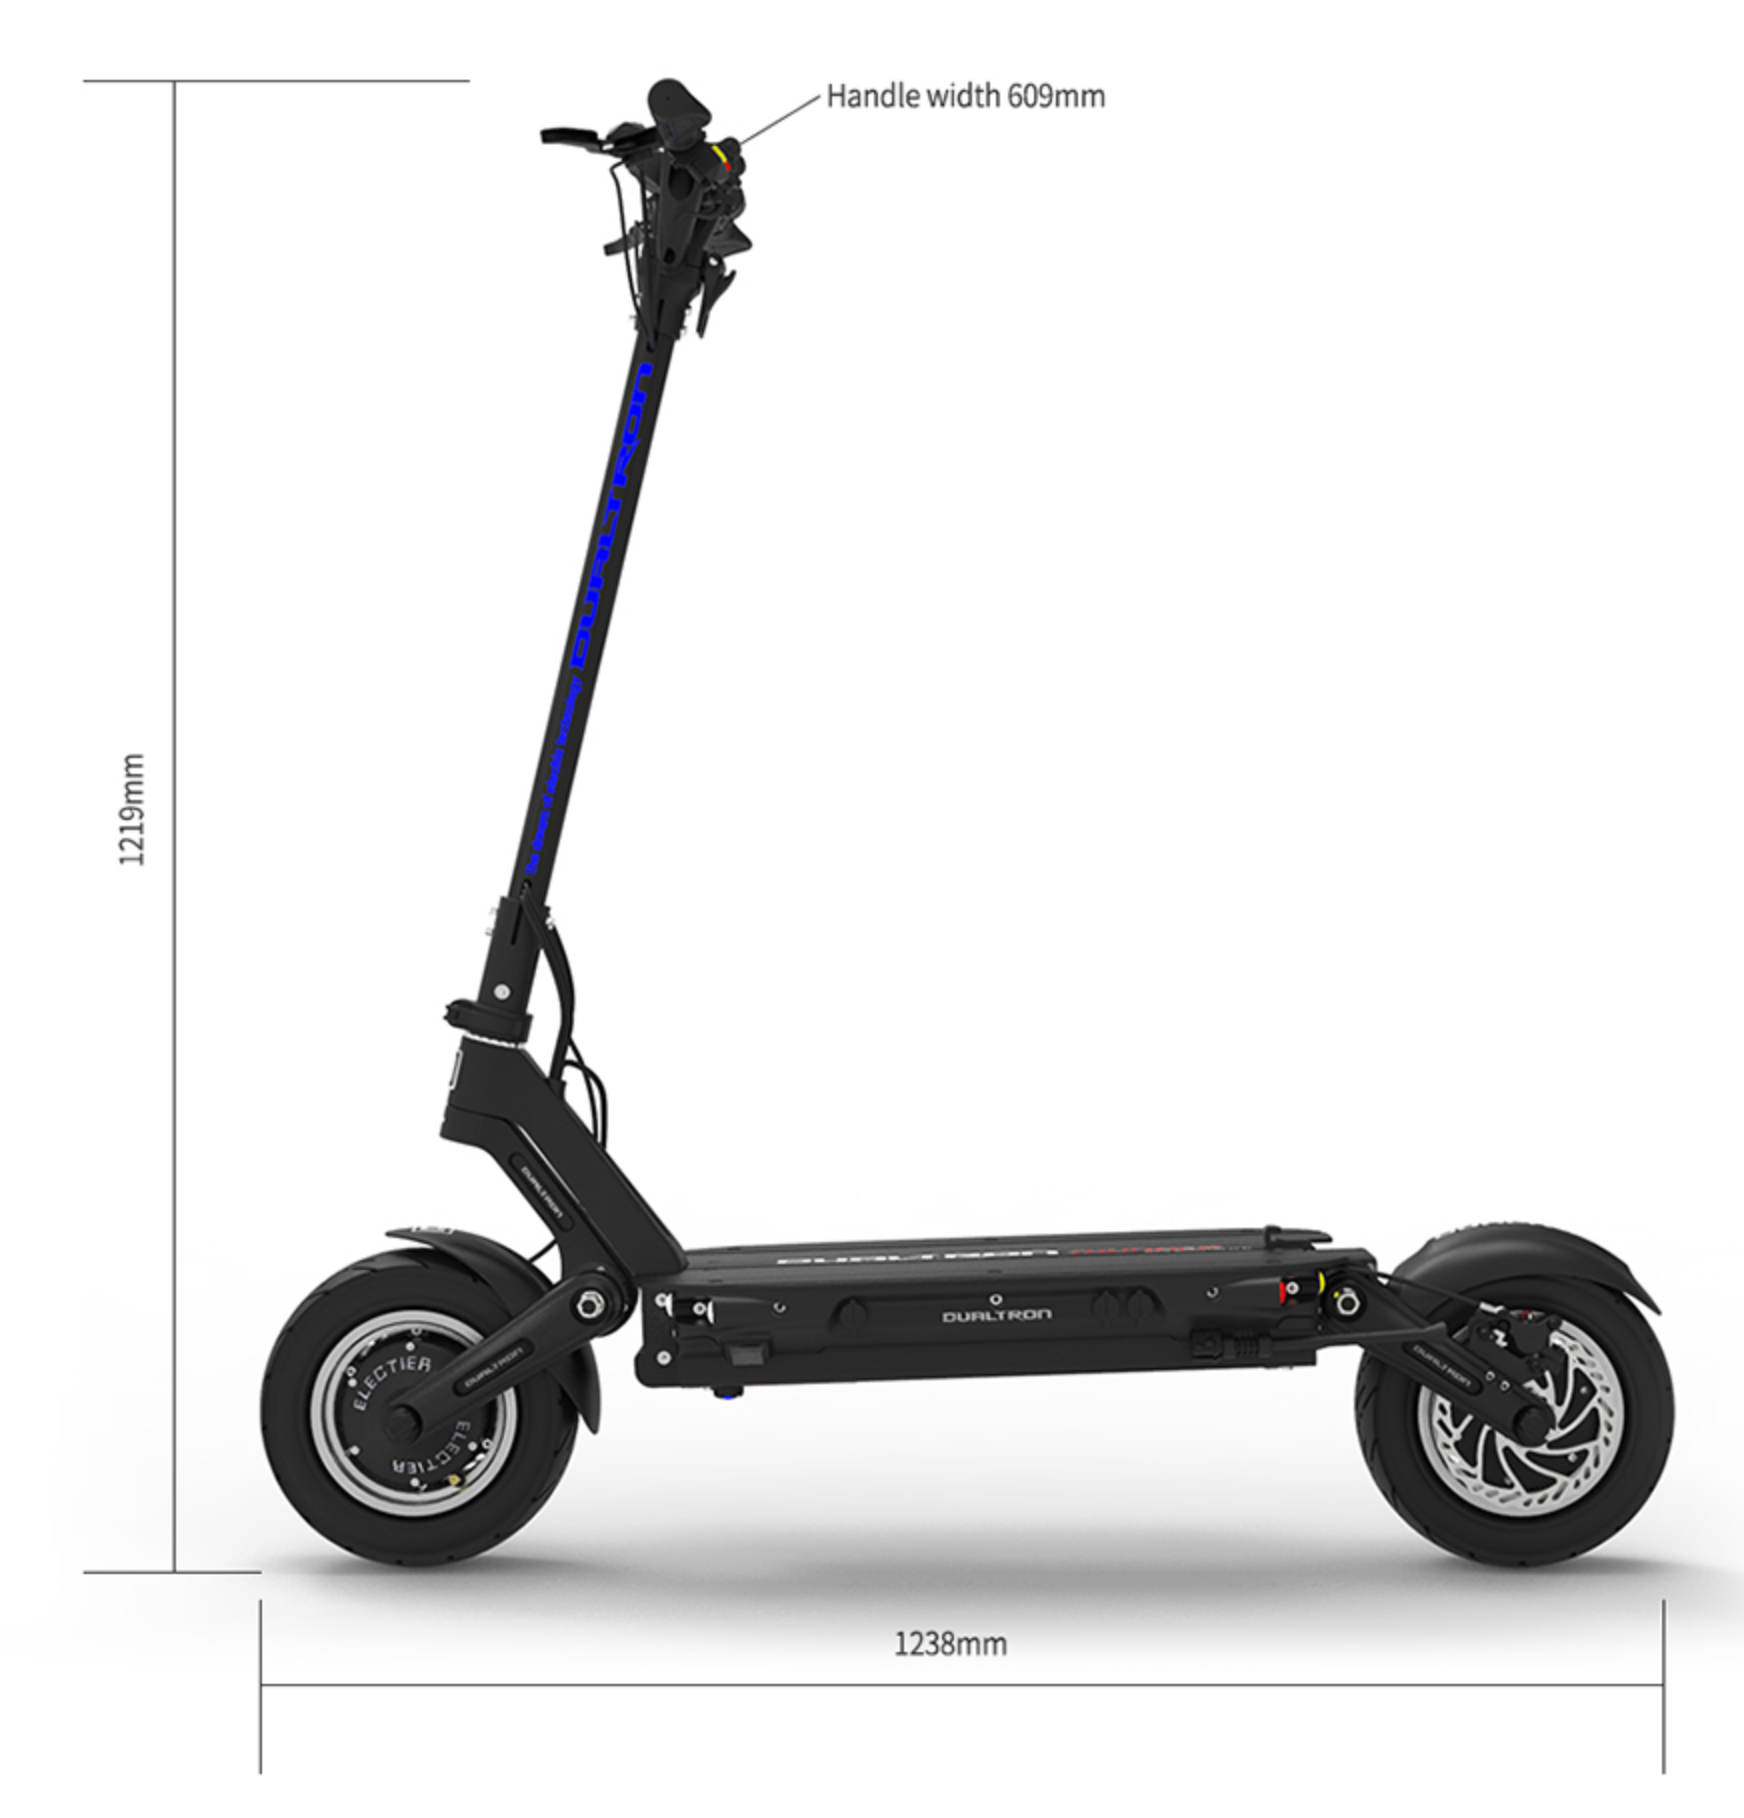 Dualtron Thunder Electric Scooter Main Image